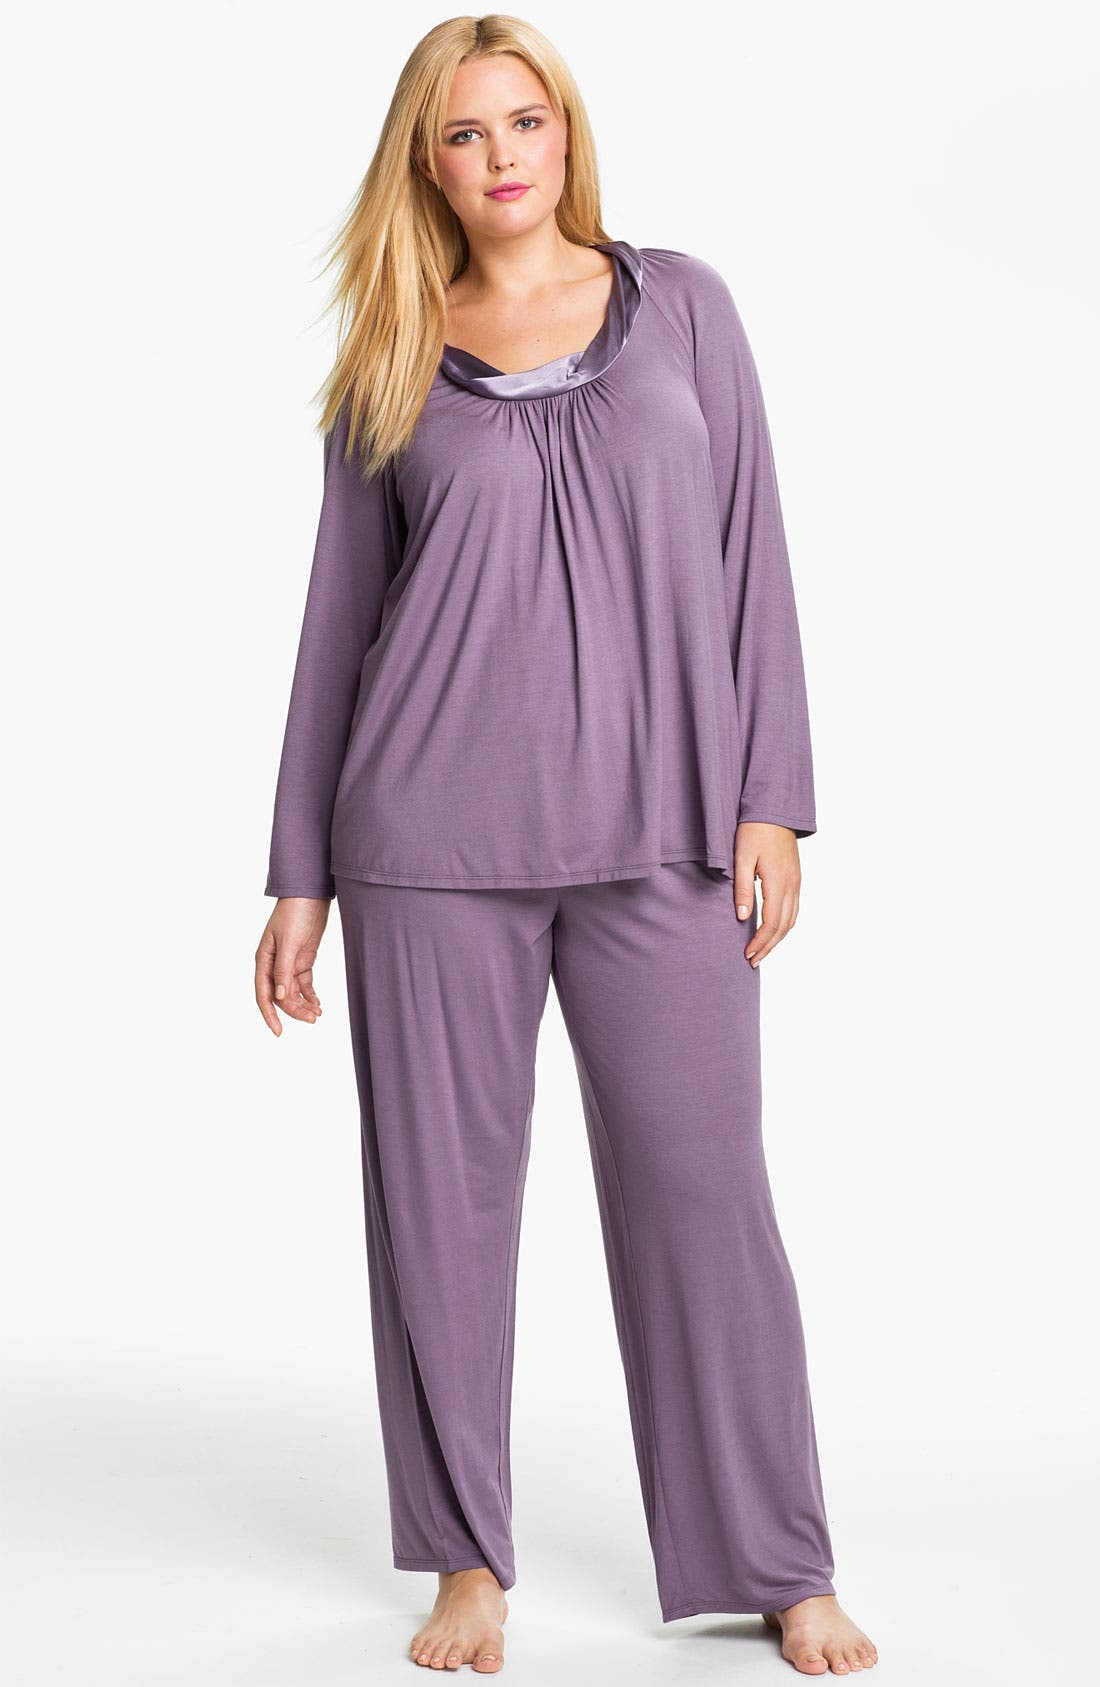 Alternate Image 1 Selected - Midnight by Carole Hochman 'Forever & Always' Pajamas (Plus)